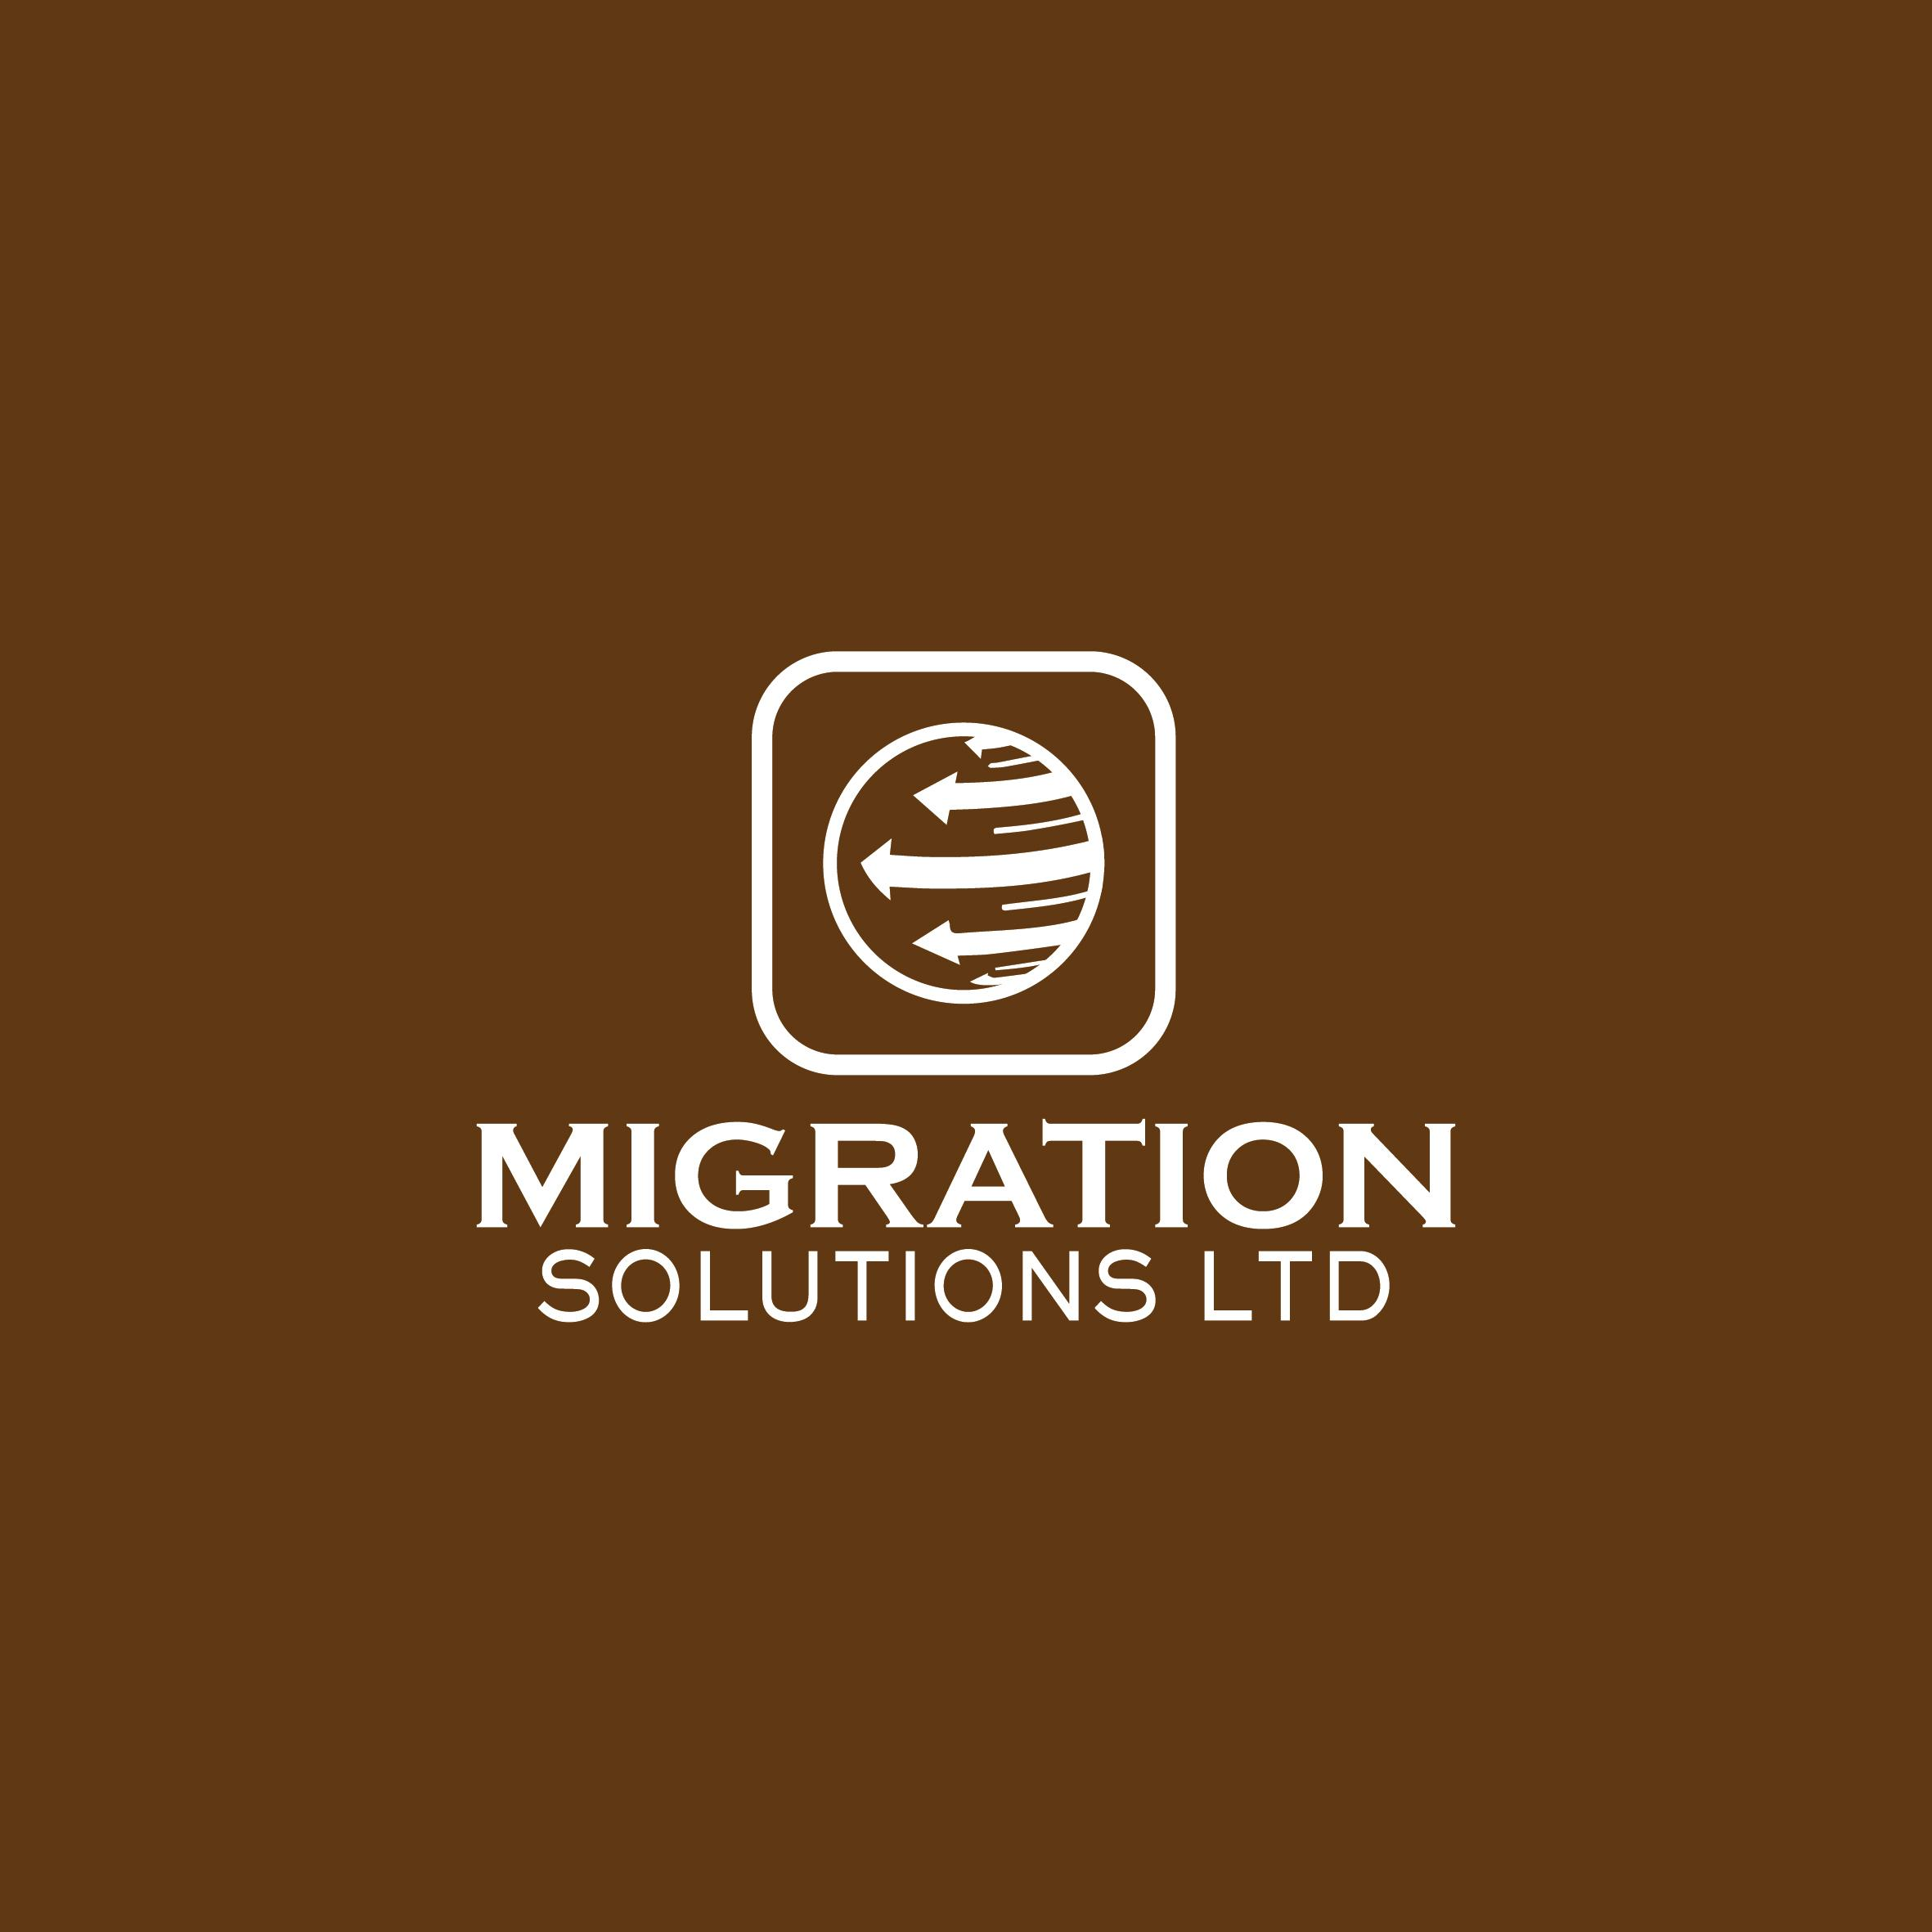 MIGRATION SOLUTION LIMITED